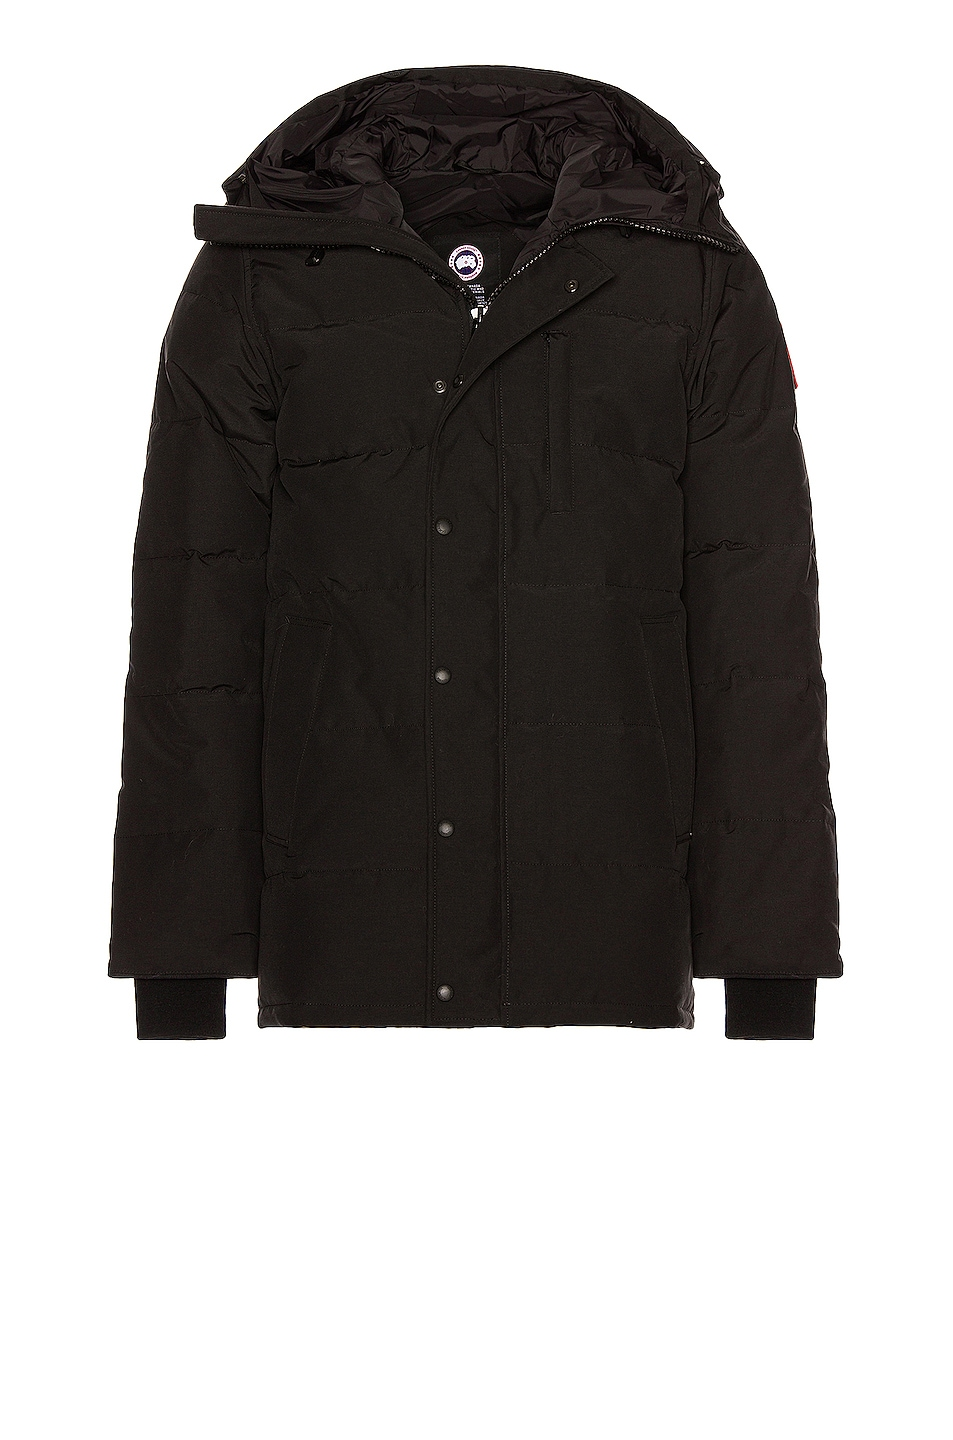 Image 1 of Canada Goose Carson Parka in Black